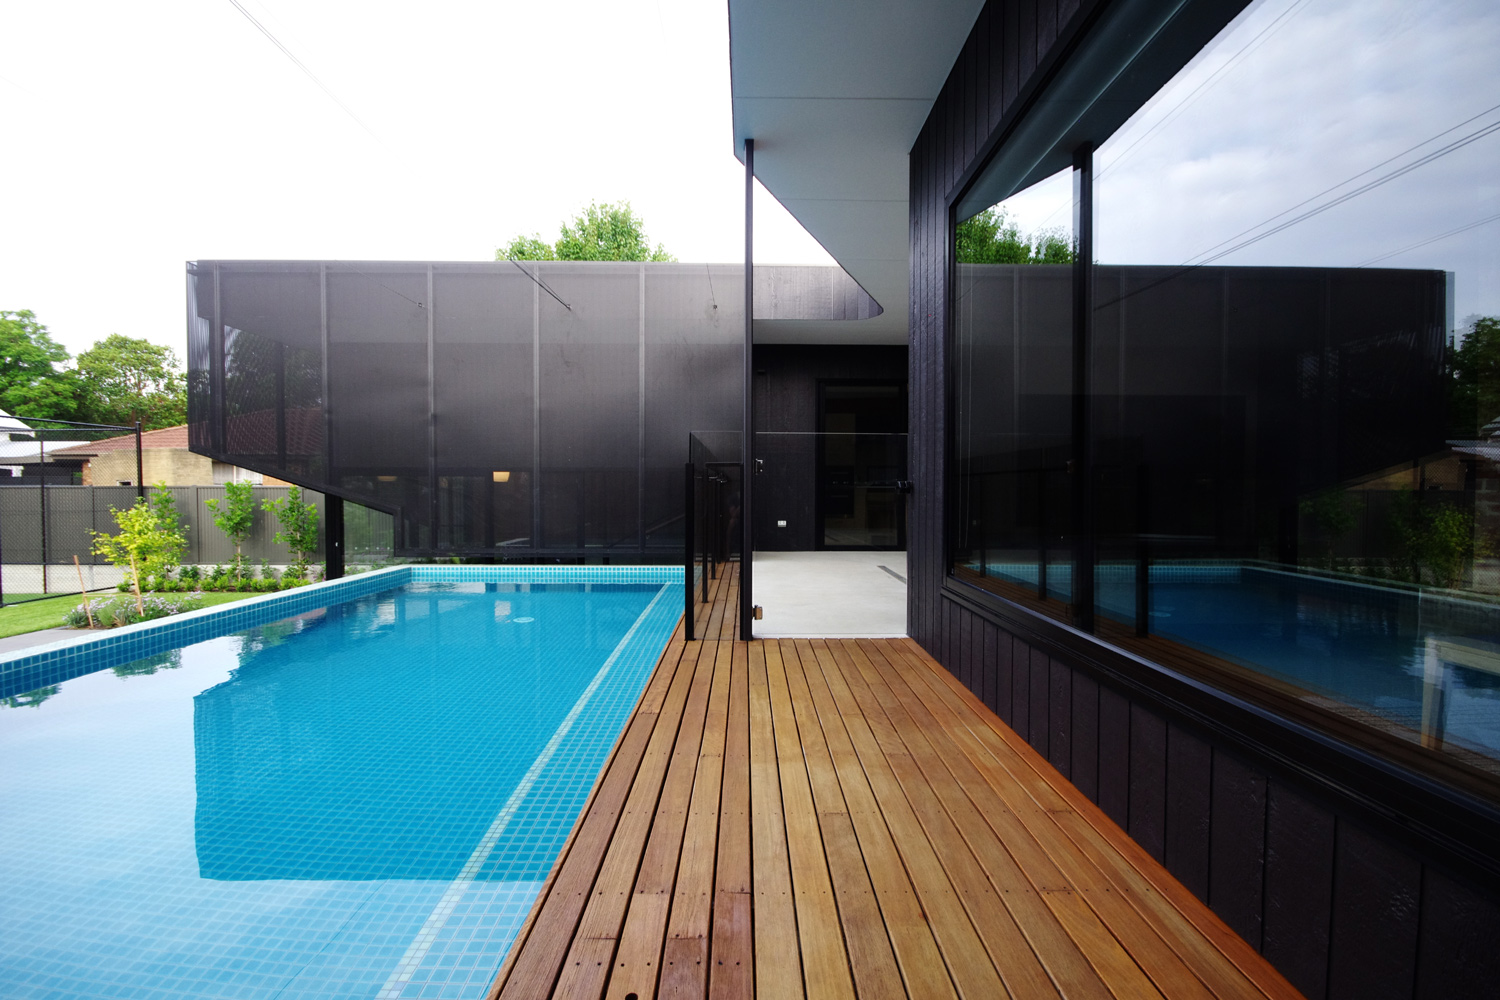 Khab Architects house extension Uney, Adelaide    #brick # pool #veilandmortar #khabarchitects #steel #hidden #secret #blendedhome #adelaidehouse #awardwinningarchitecture  #architect #architecturelovers #architect #architecturephotography #architectureporn #architects #architectural #architecturelover #architecturestudent #architecturalphotography #architecturedesign #architectanddesign #architecturephoto #architecturaldesign #architectureschool #architecturaldigest #architecturesketch #architecturemodel #architectura #Architecte #architecturelife #architecturegram #architectureandpeople #architecturelove #architecturedaily #buildings #adlarchigram #courtyardhouse @adelaide_photographer #pressedtin #naturaltimber #dulux #duluxcolour #adelaide #khabarchitects #paintcolour #adelaidehouse #awardwinningarchitecture #bedroom #joinery